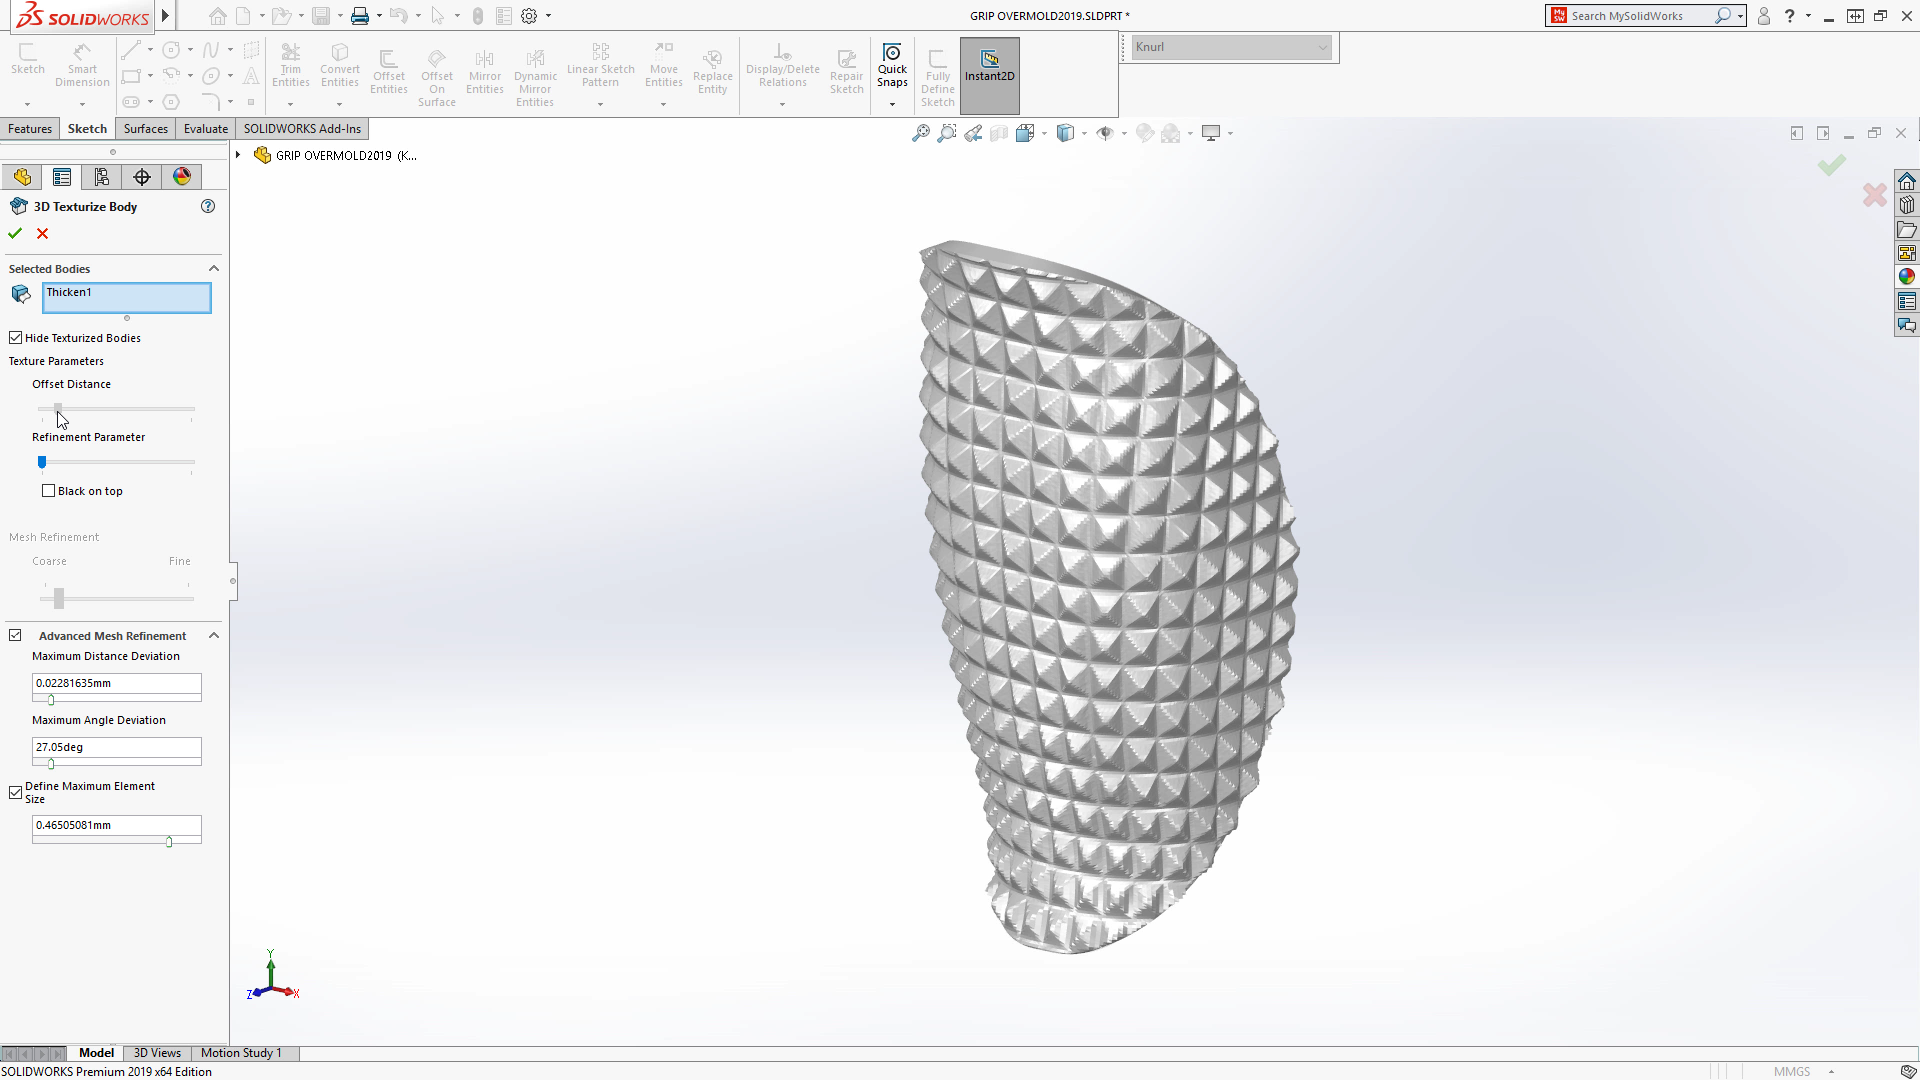 Image result for solidworks 2019 texture